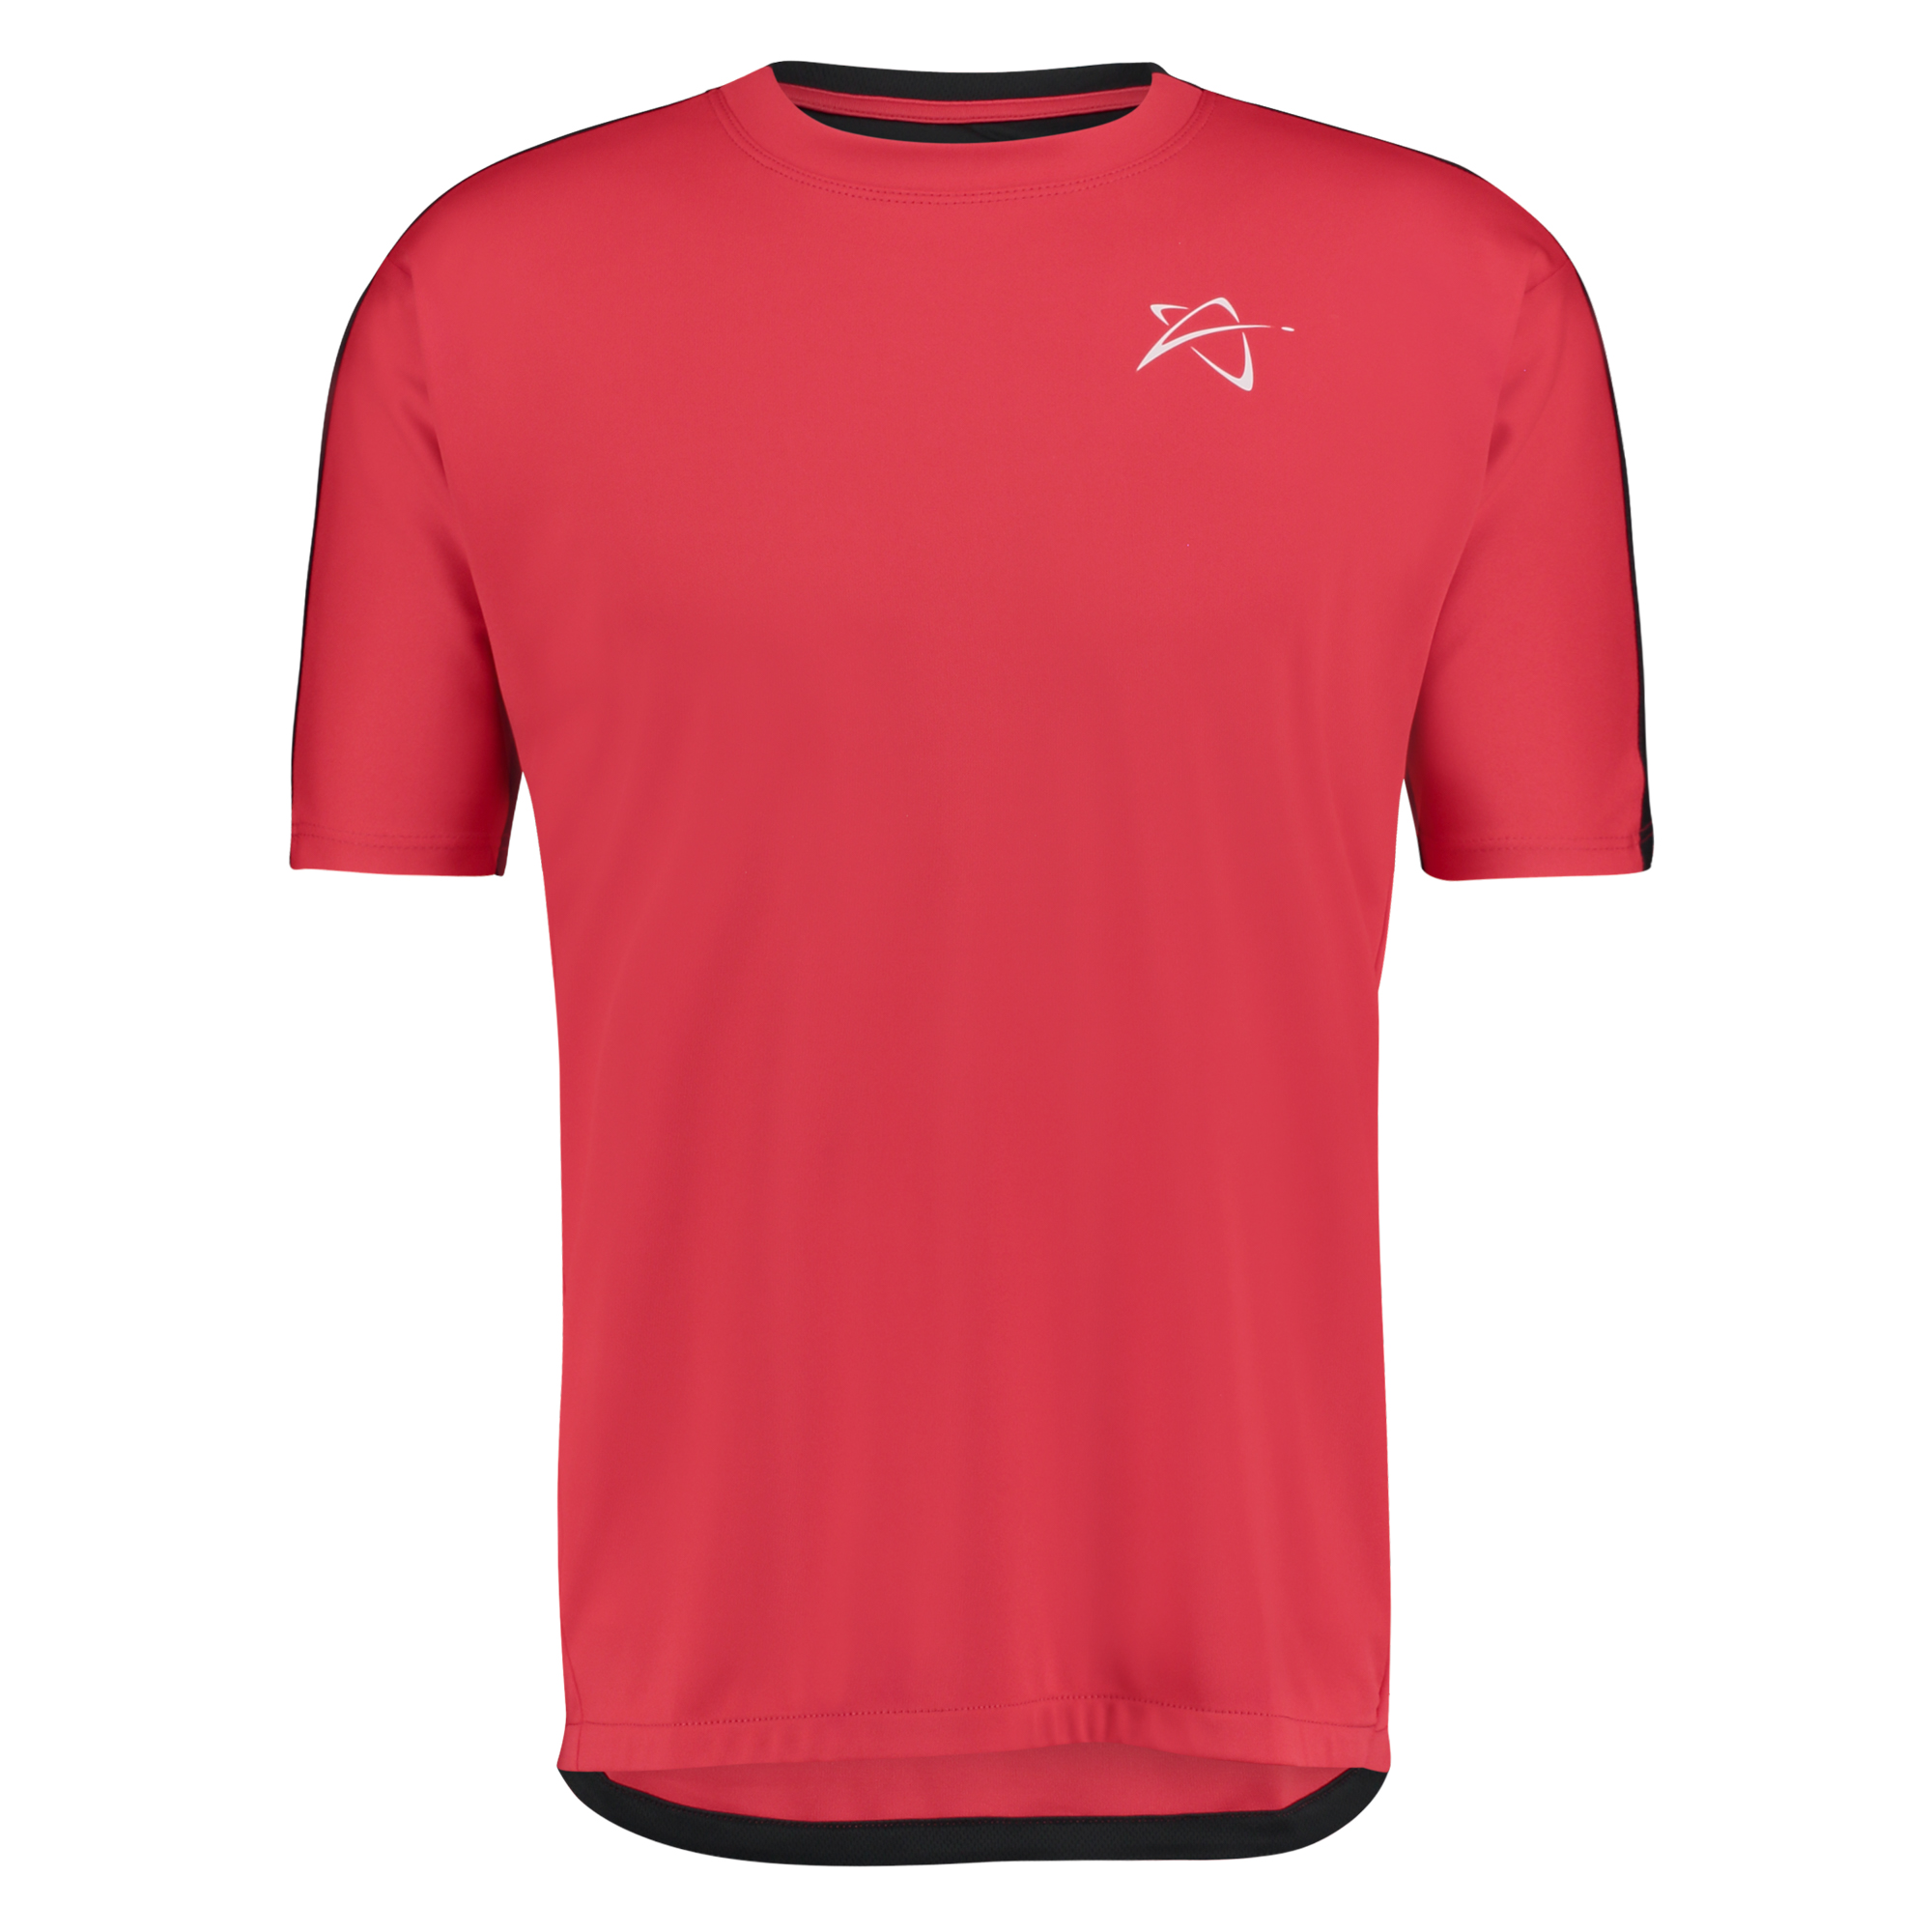 ace top red front.jpg